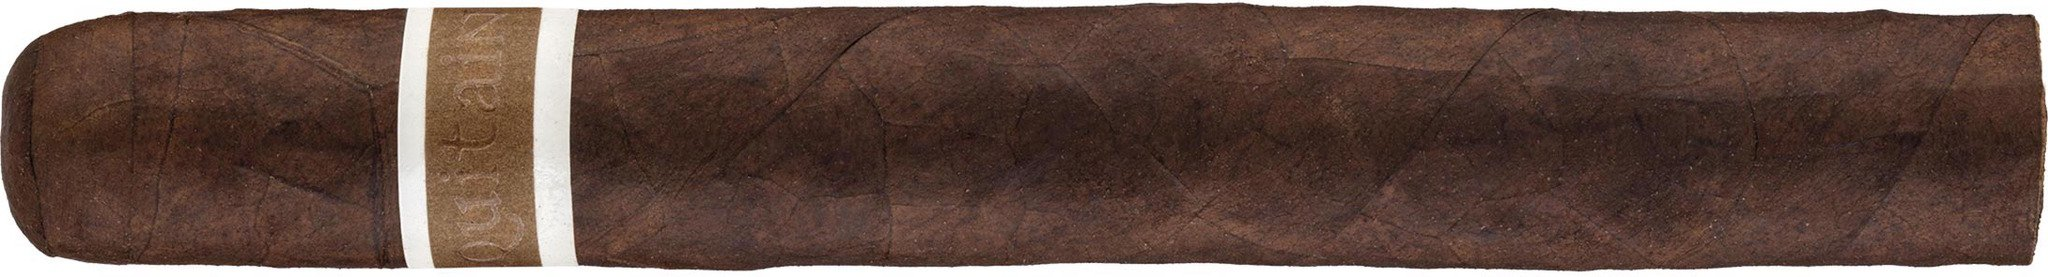 RoMa Craft Tobac CroMagnon Aquitaine Anthropology (Grand Corona)